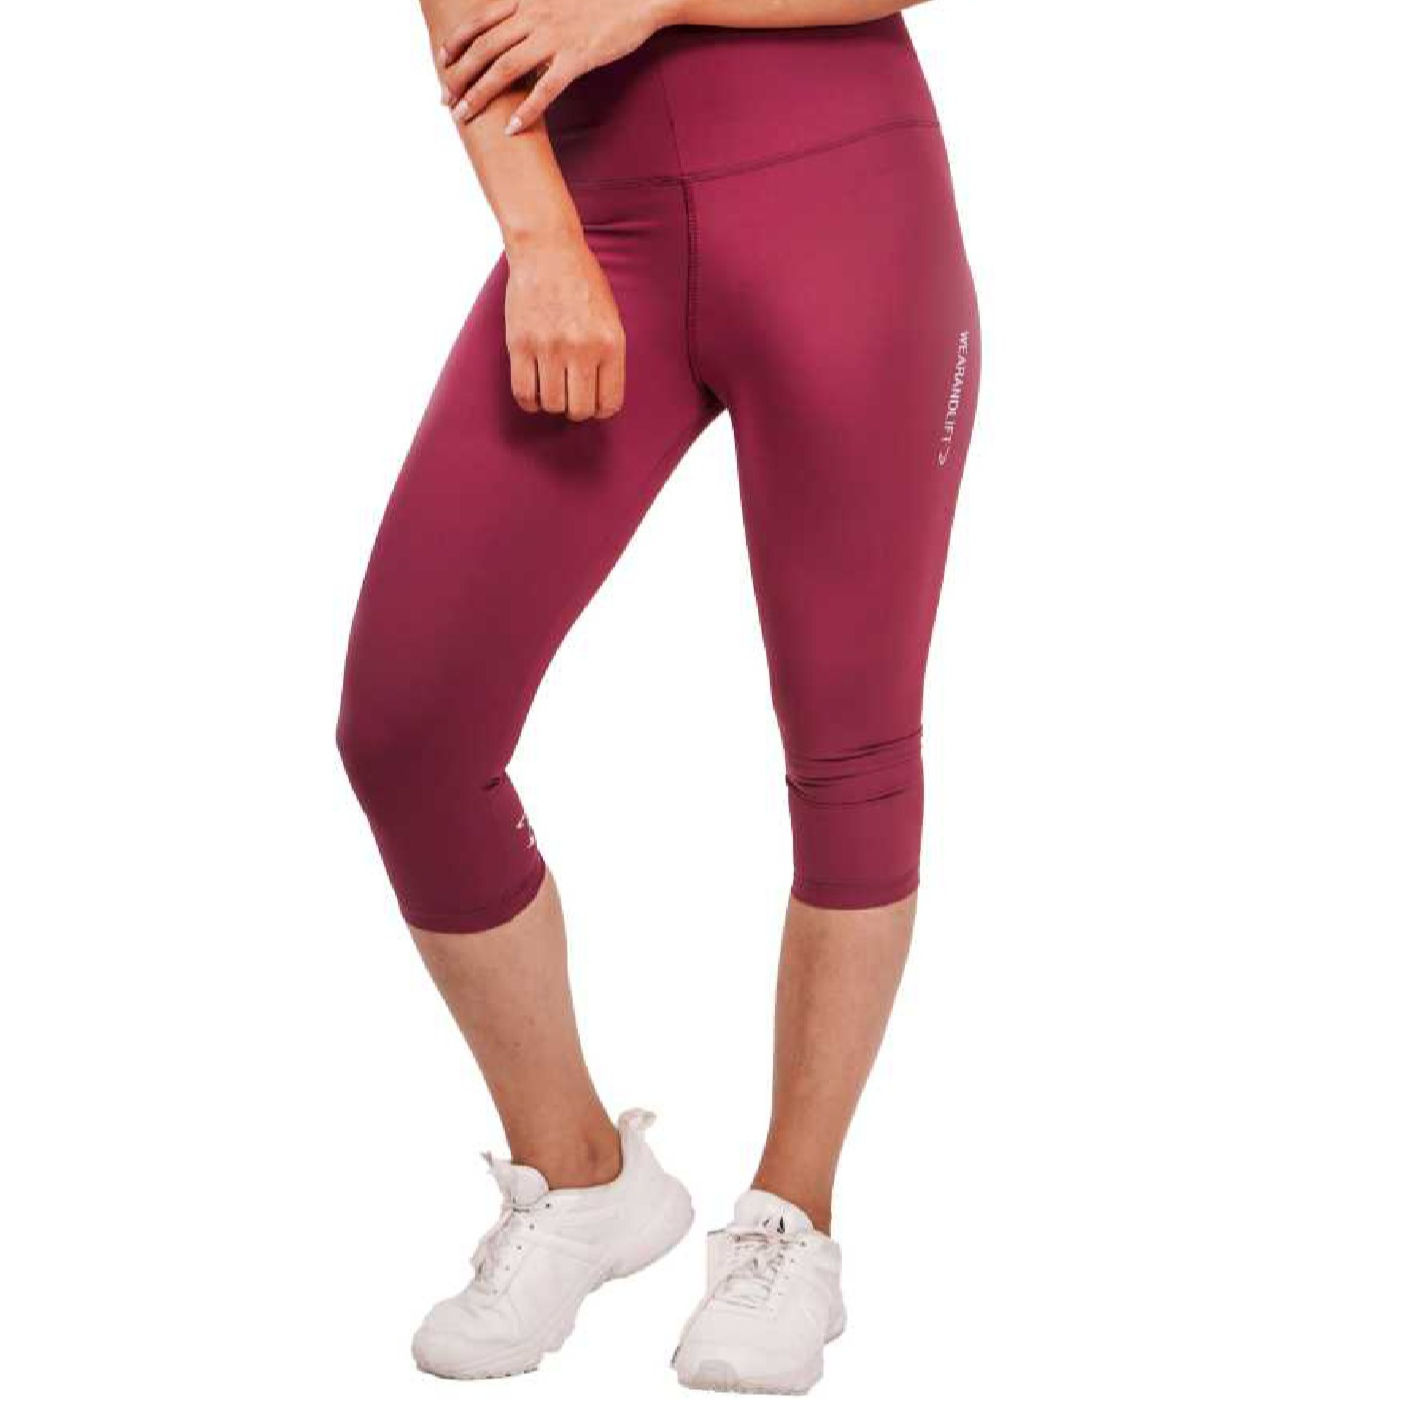 Wear And Lift Solid Women Purple Tights - Buy Wear And Lift Solid Women Purple Tights Online at Best Prices in India | Flipkart.com